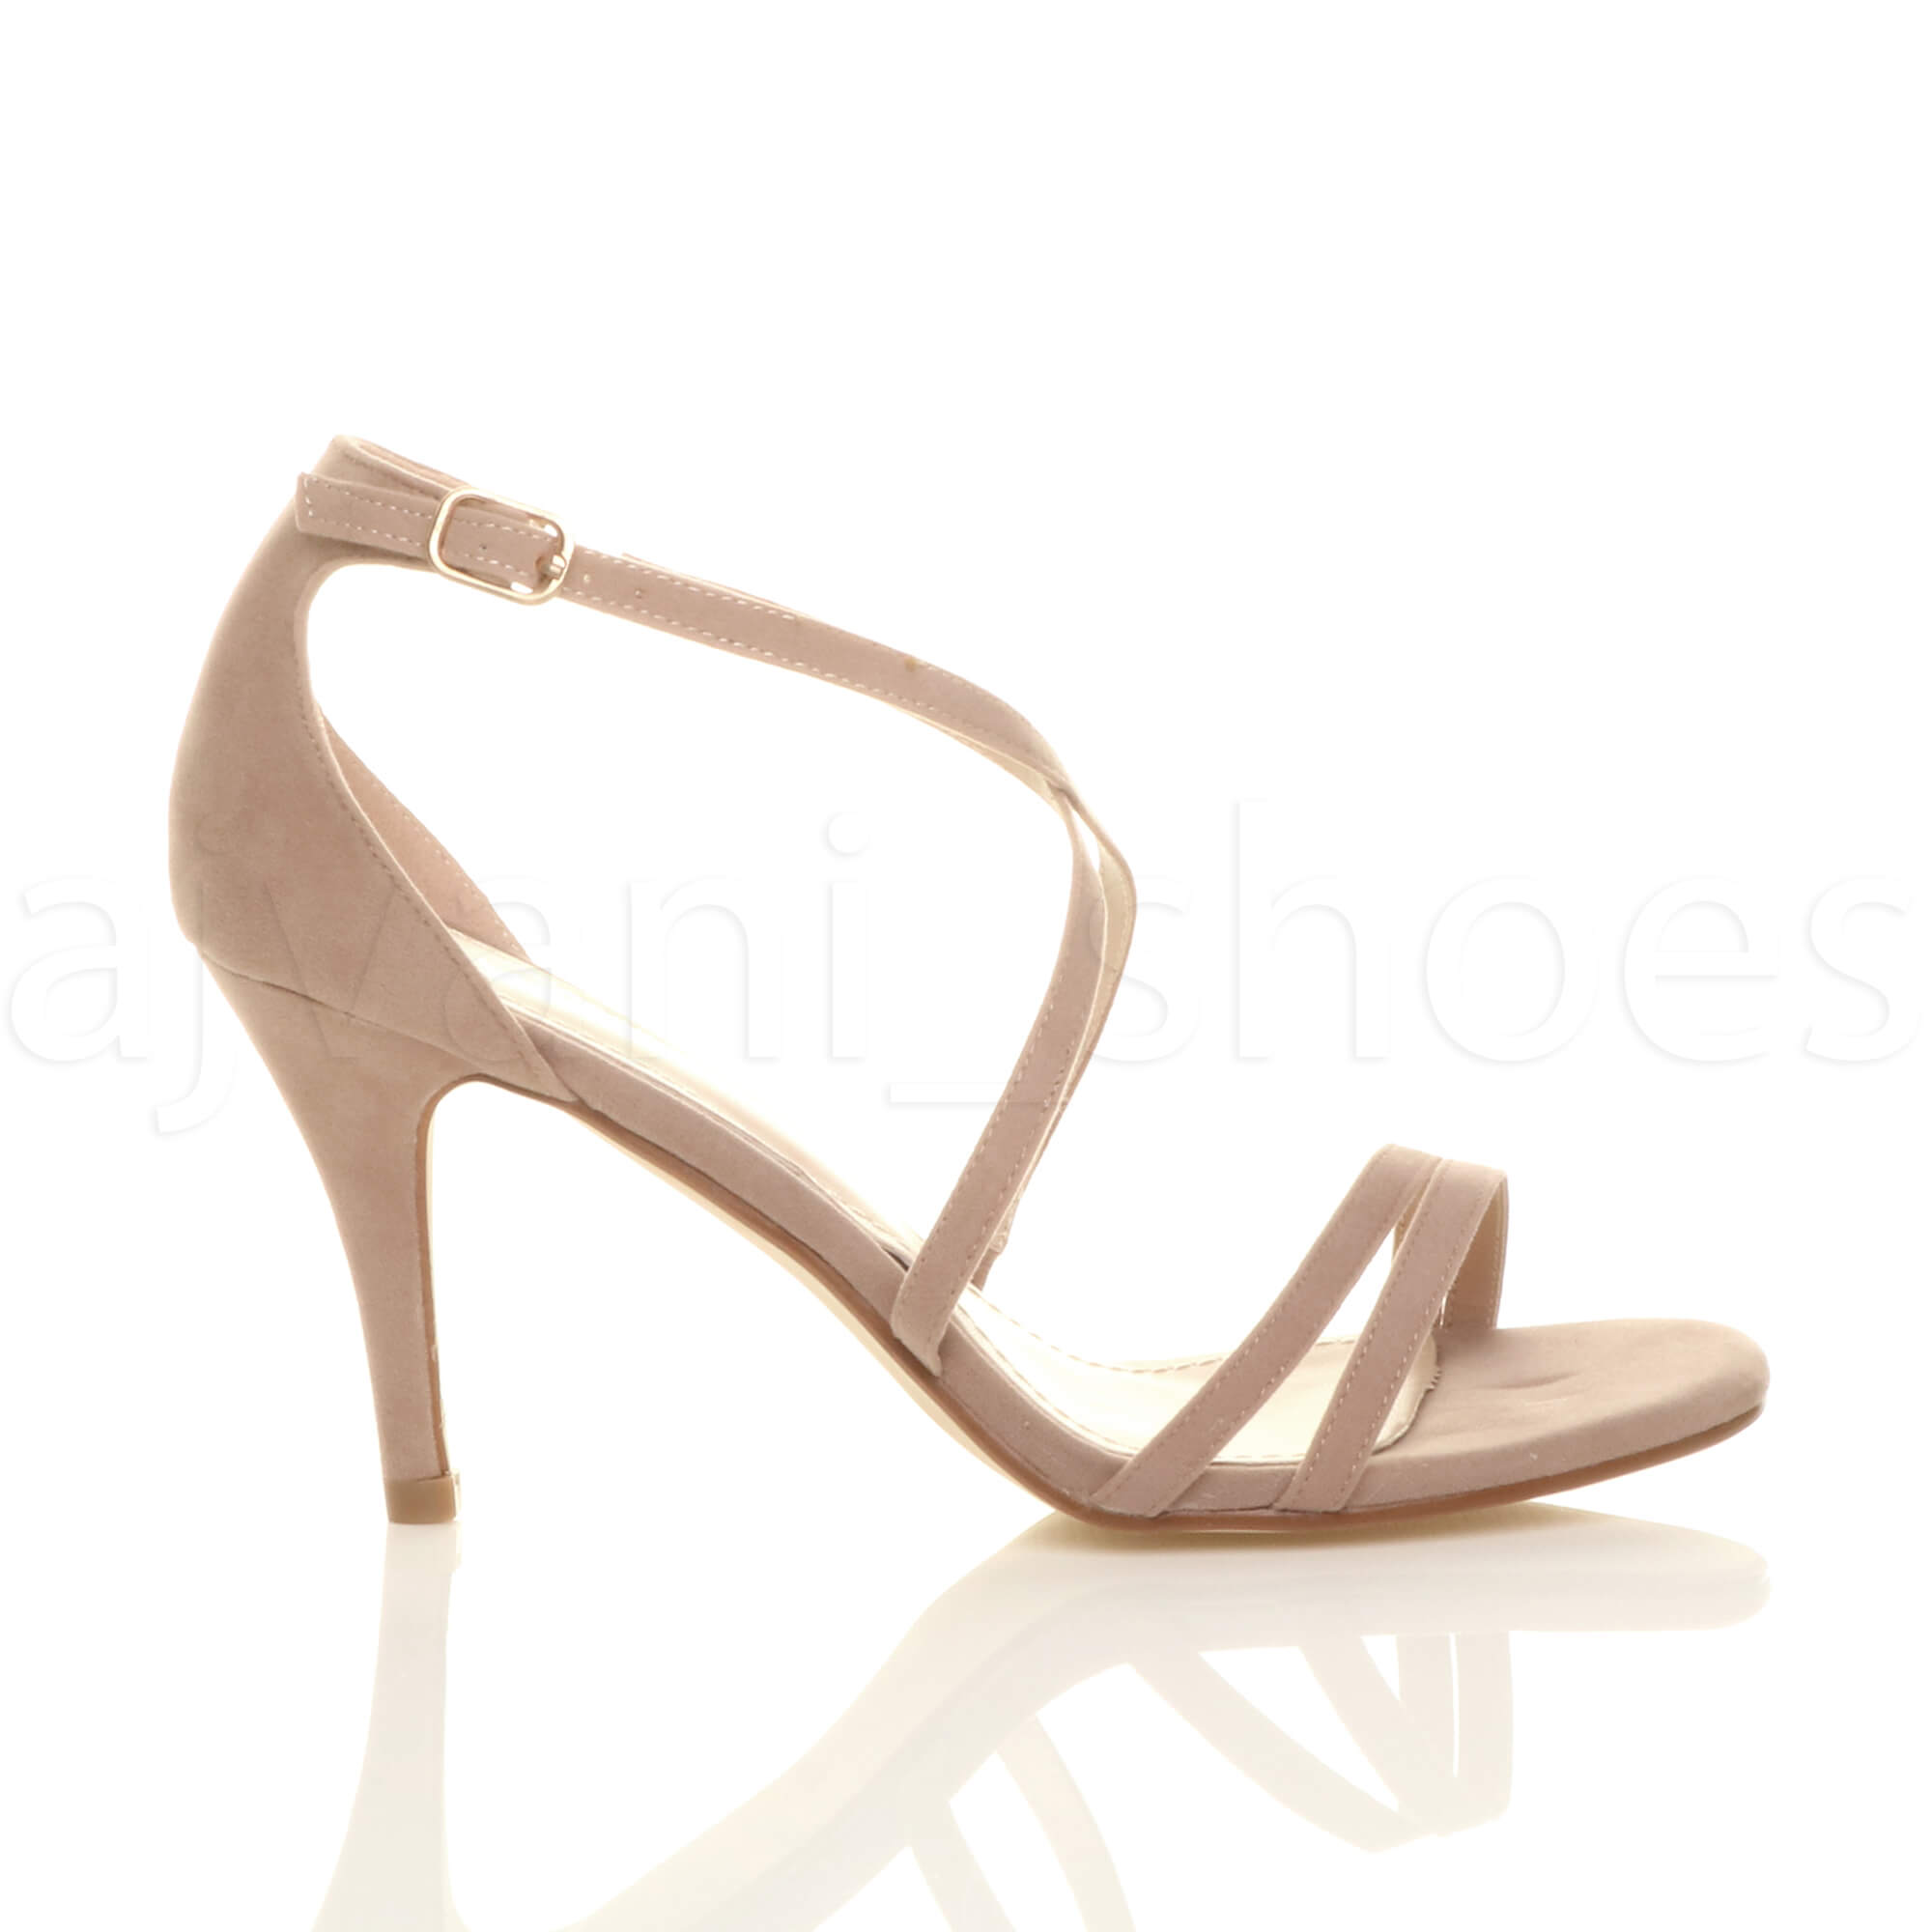 WOMENS-LADIES-MID-HIGH-HEEL-STRAPPY-CROSSOVER-WEDDING-PROM-SANDALS-SHOES-SIZE thumbnail 115